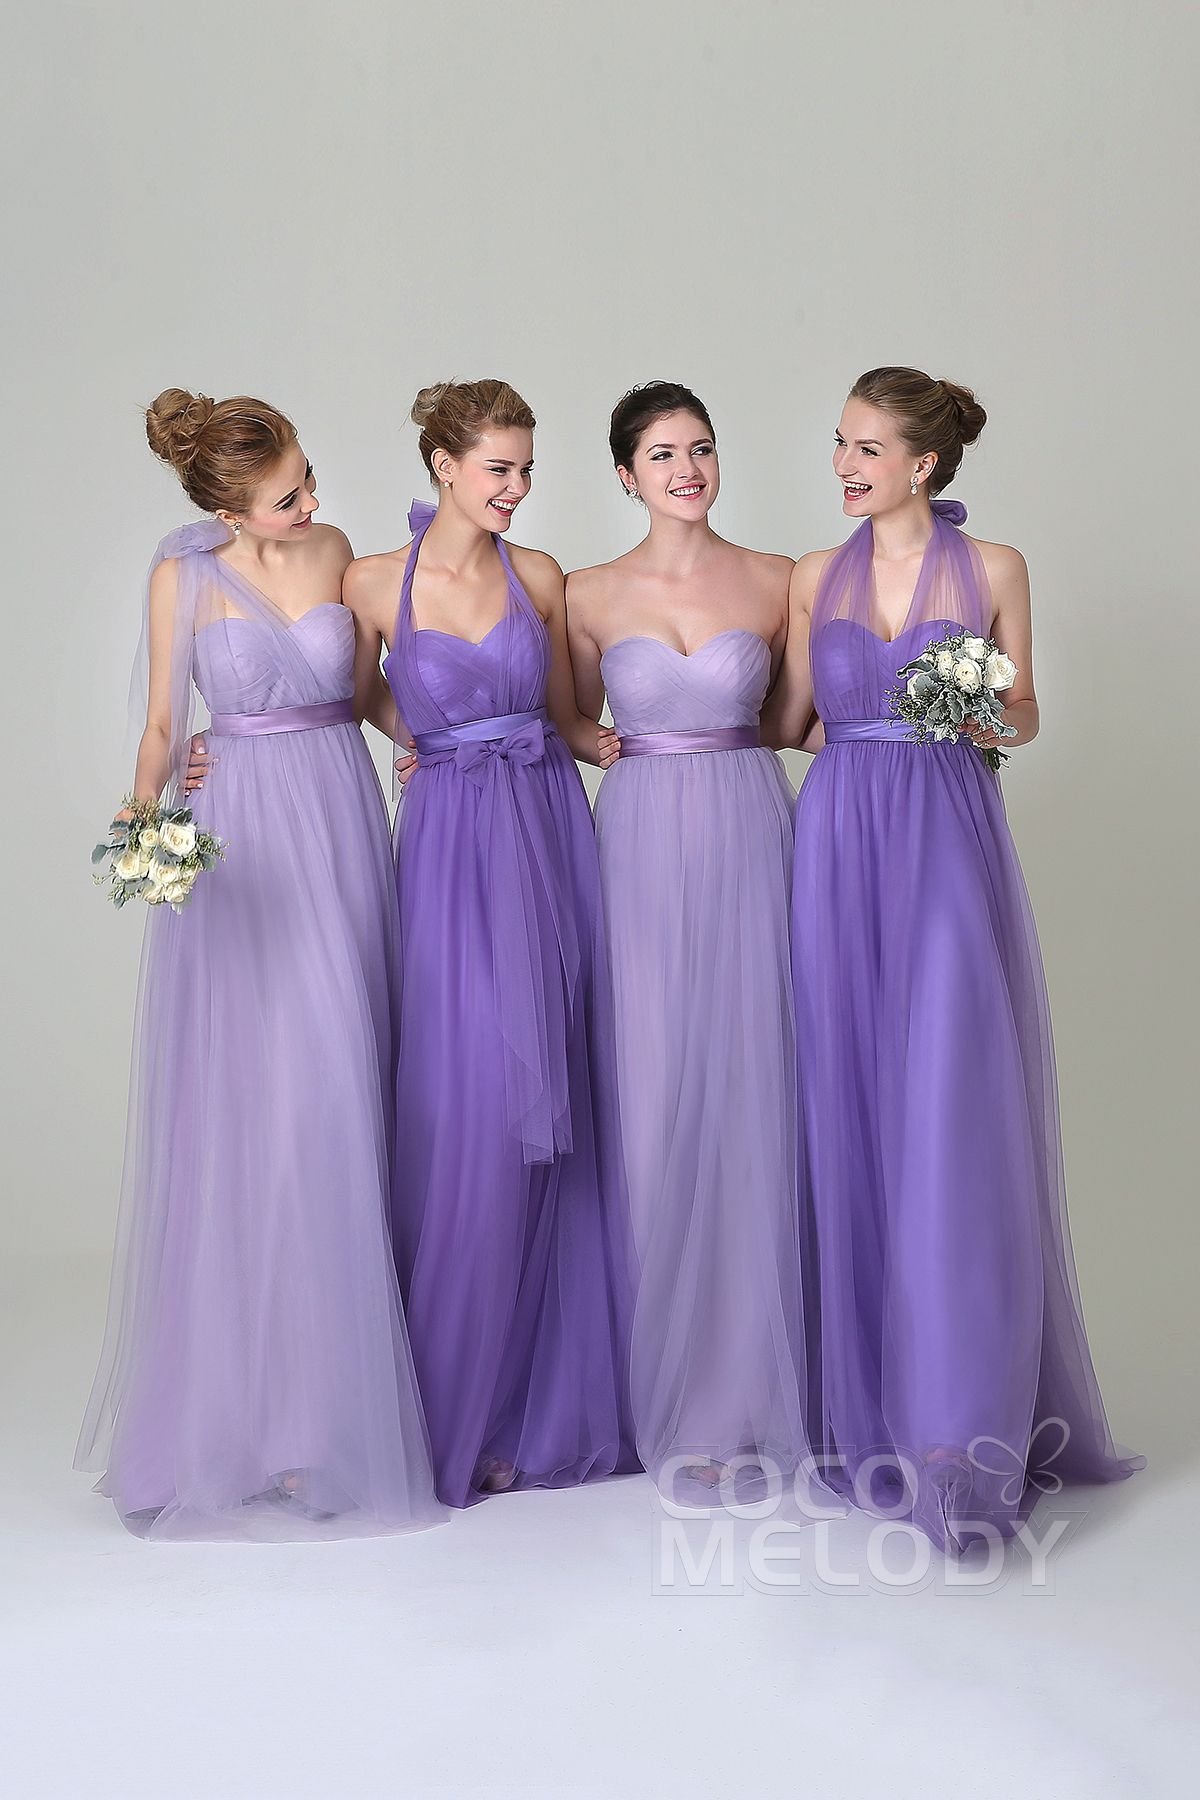 HALEIGH - Bridesmaid Dress | Bridal parties, Wedding and Weddings